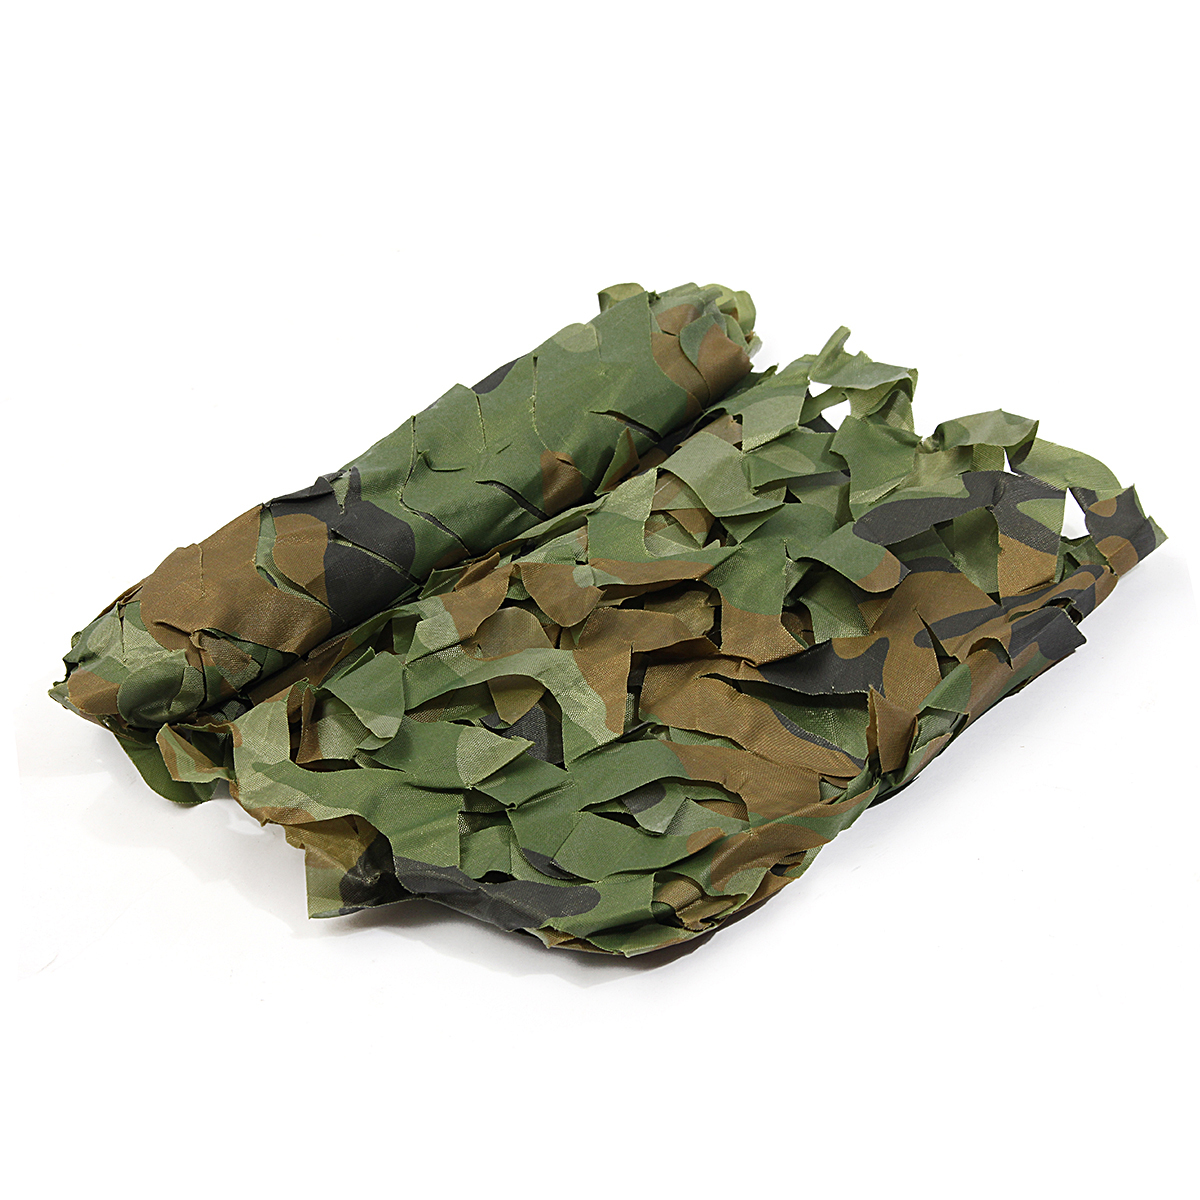 Filet-DE-Camouflage-MILITAIR-1-2-4-5-7M-METRE-Multi-Taille-CHASSE-Jungle-Camo miniature 8